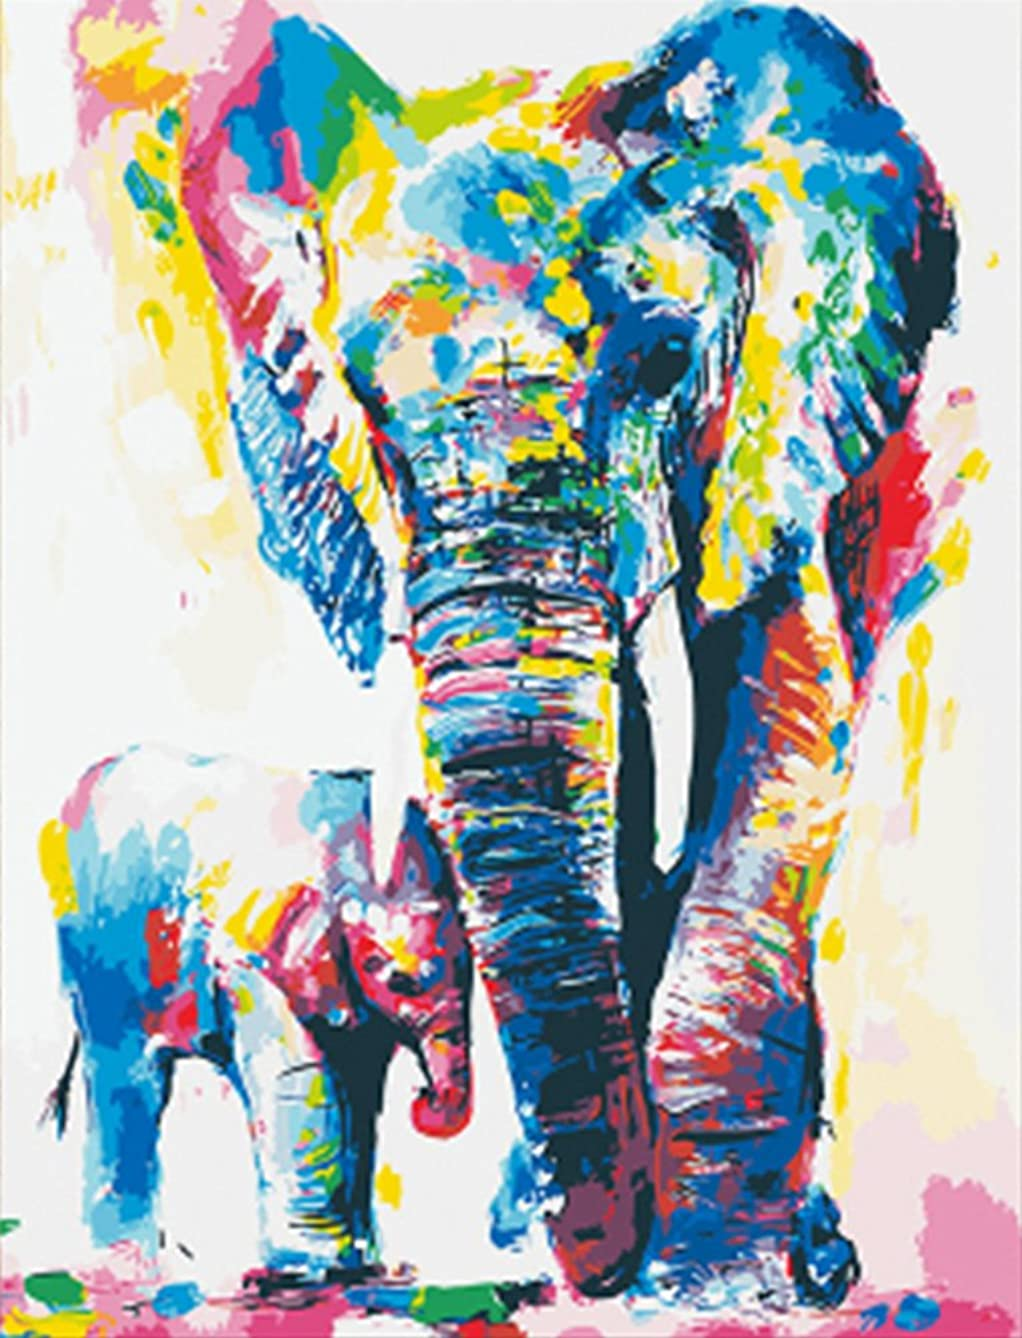 Wowdecor Paint by Numbers Kits for Adults Kids, DIY Number Painting - Colored Elephants Family 40 x 50 cm - New Stamped Canvas (Framed)